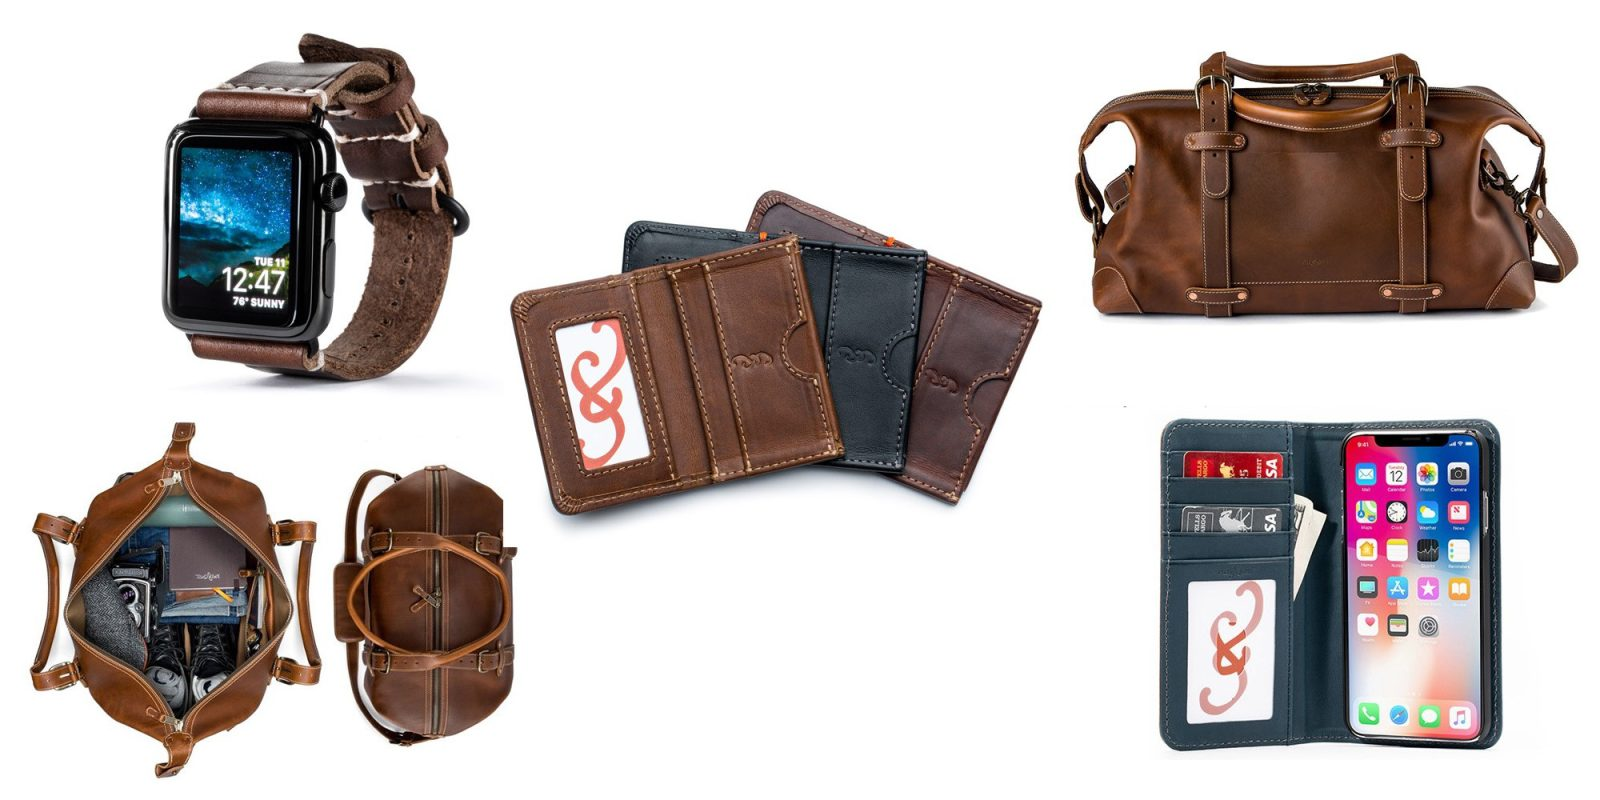 Pad & Quill seconds at up to 70% off: watch bands, iPhone cases, bags, more